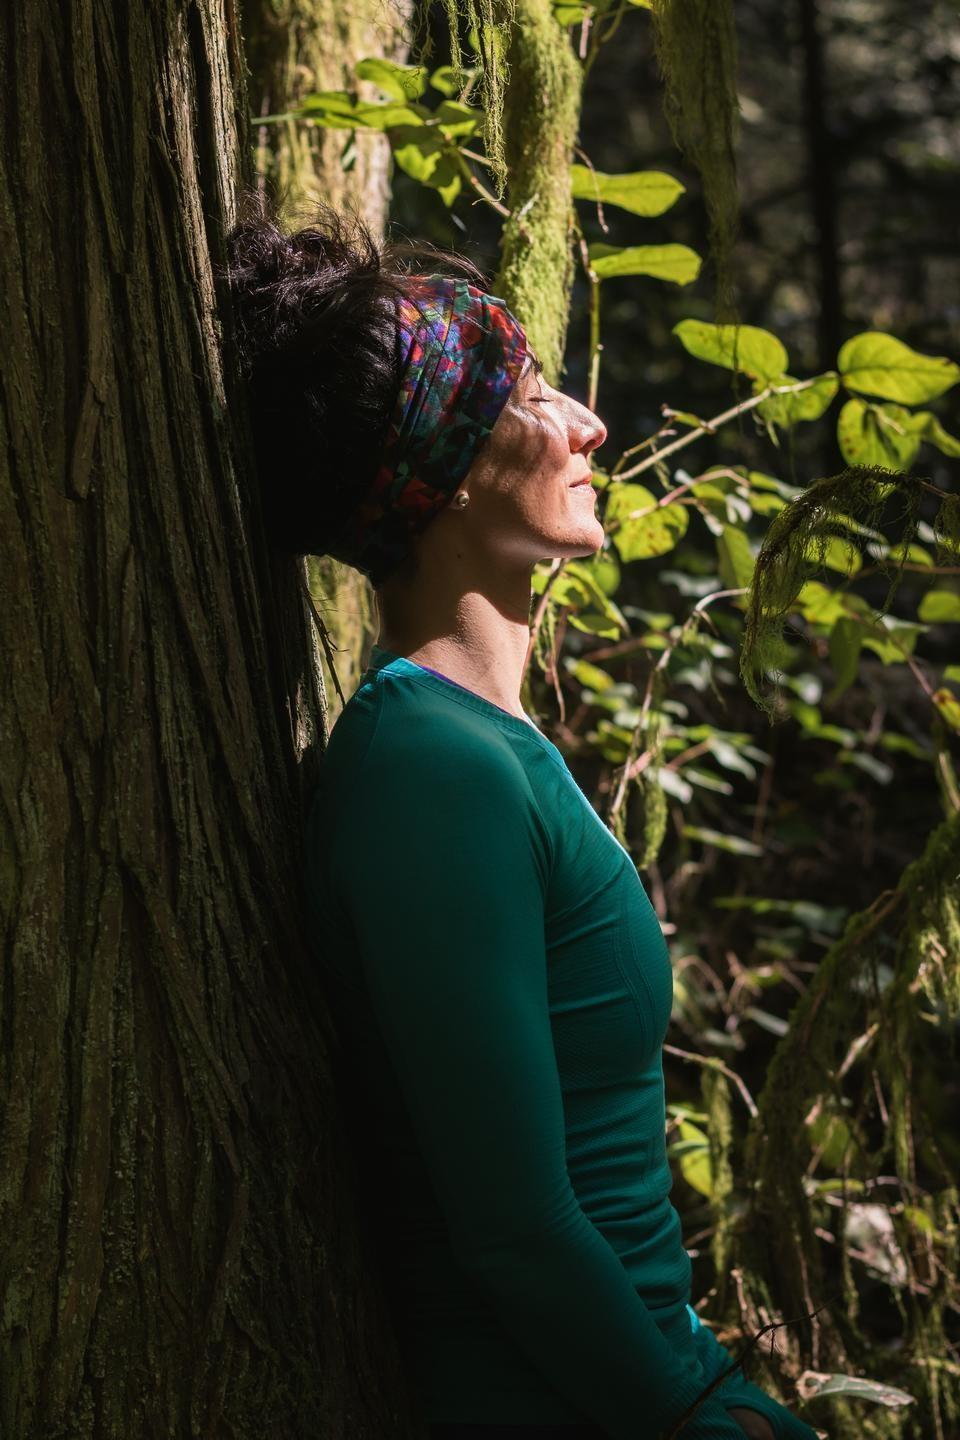 menopause woman leaning on a tree in a forest with sun rays shining on her face